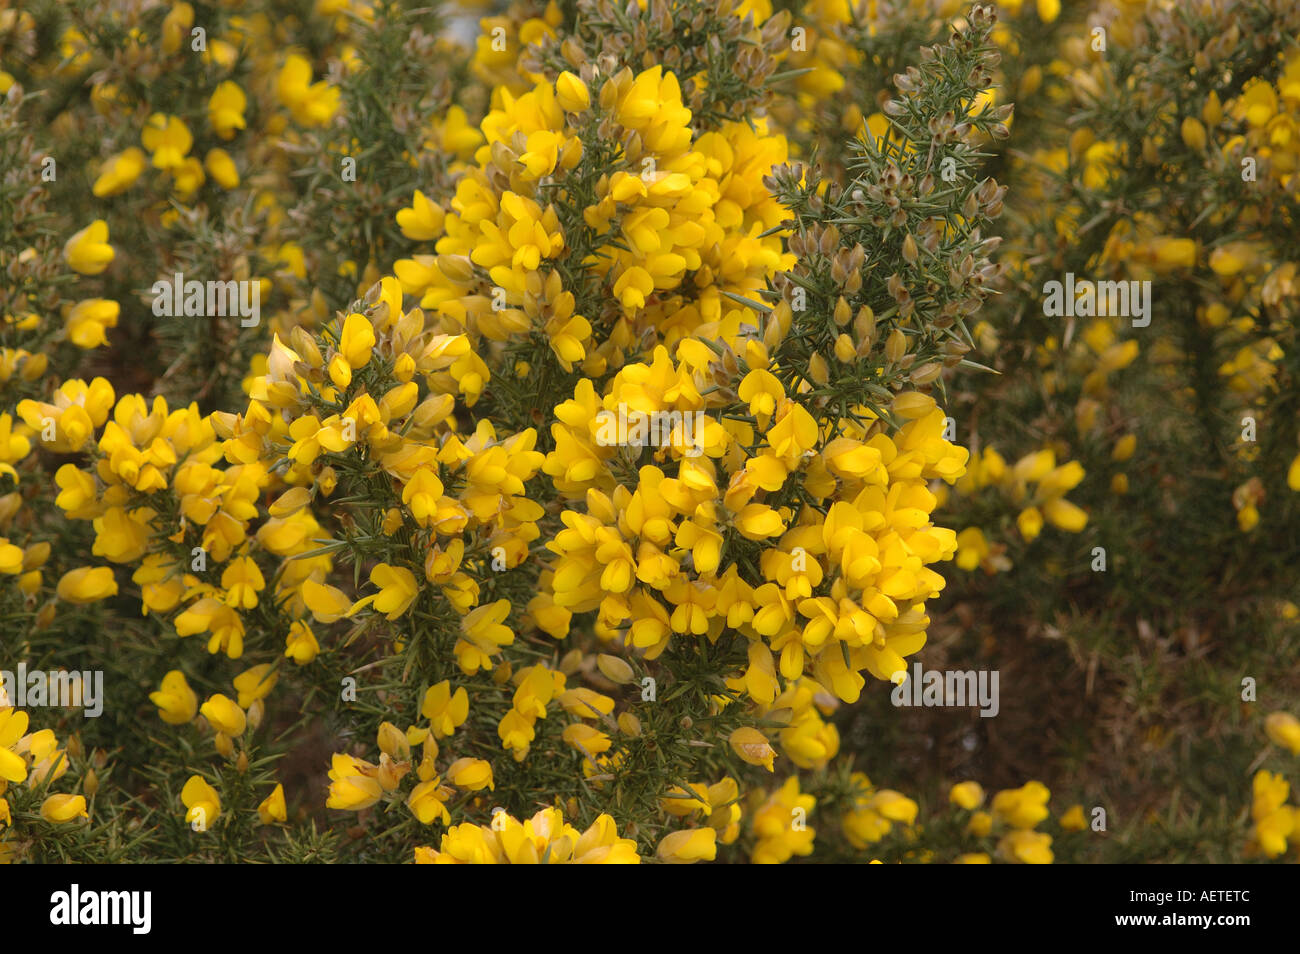 Pea Like Yellow Flowers Stock Photos Pea Like Yellow Flowers Stock